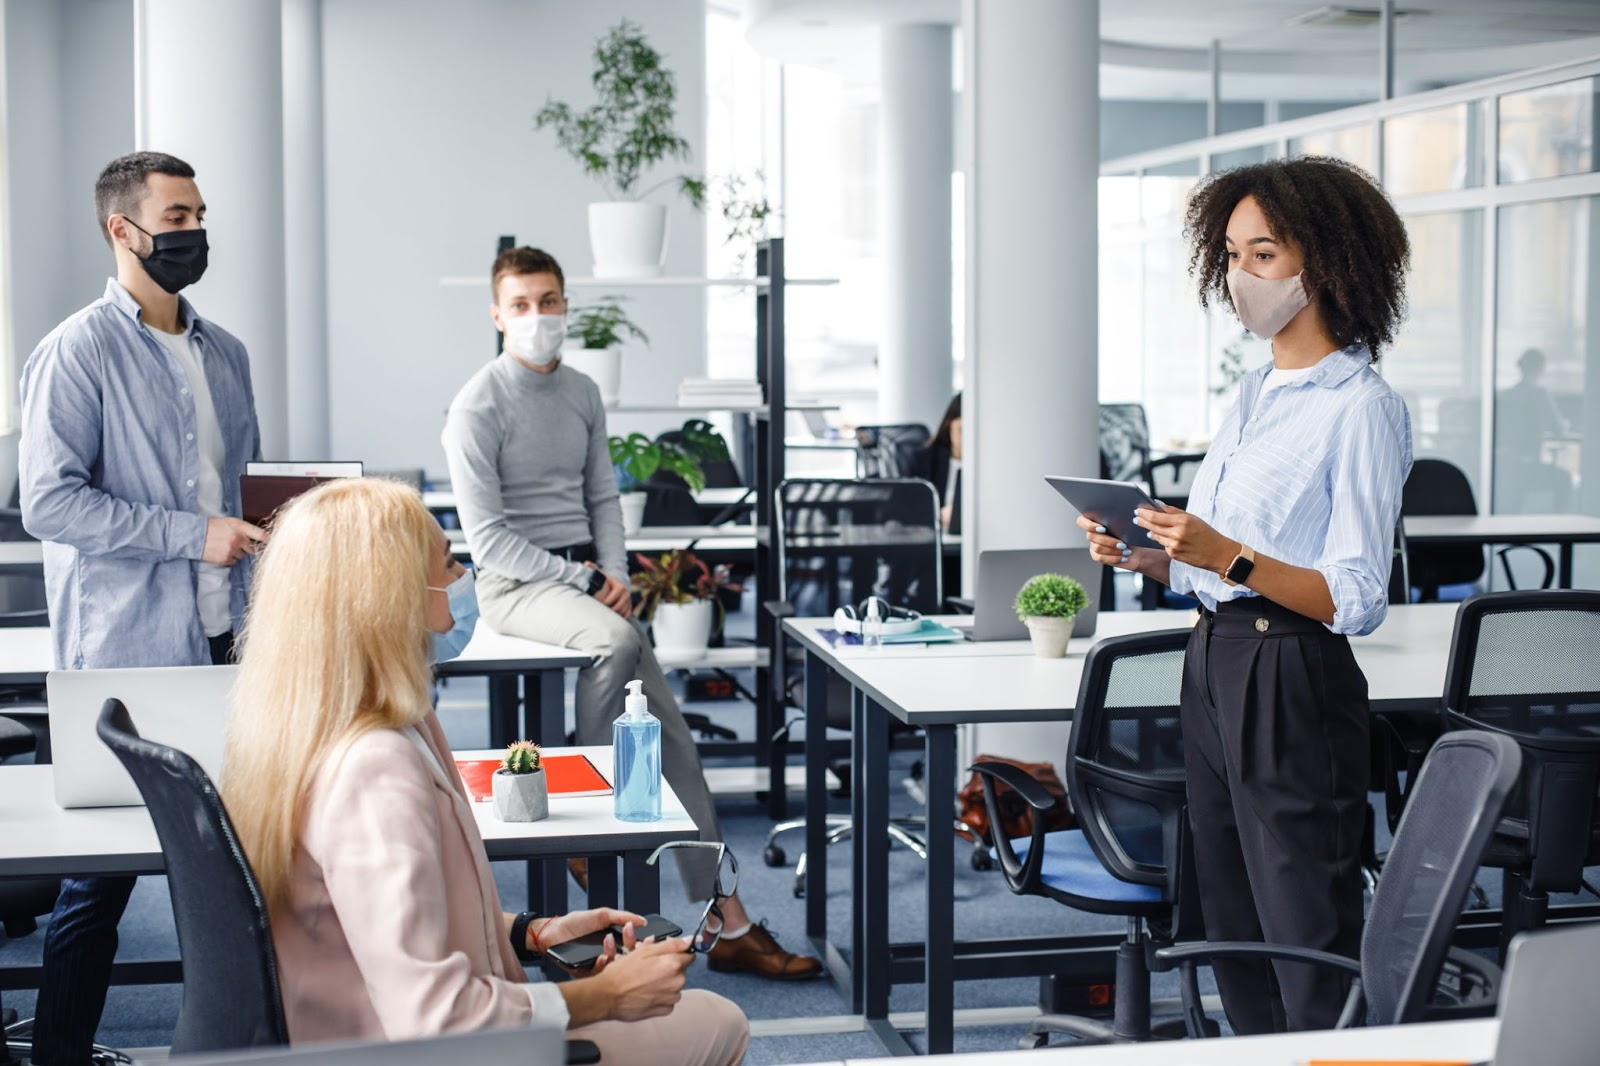 Group of male and female coworkers holding a meeting in an open workspace